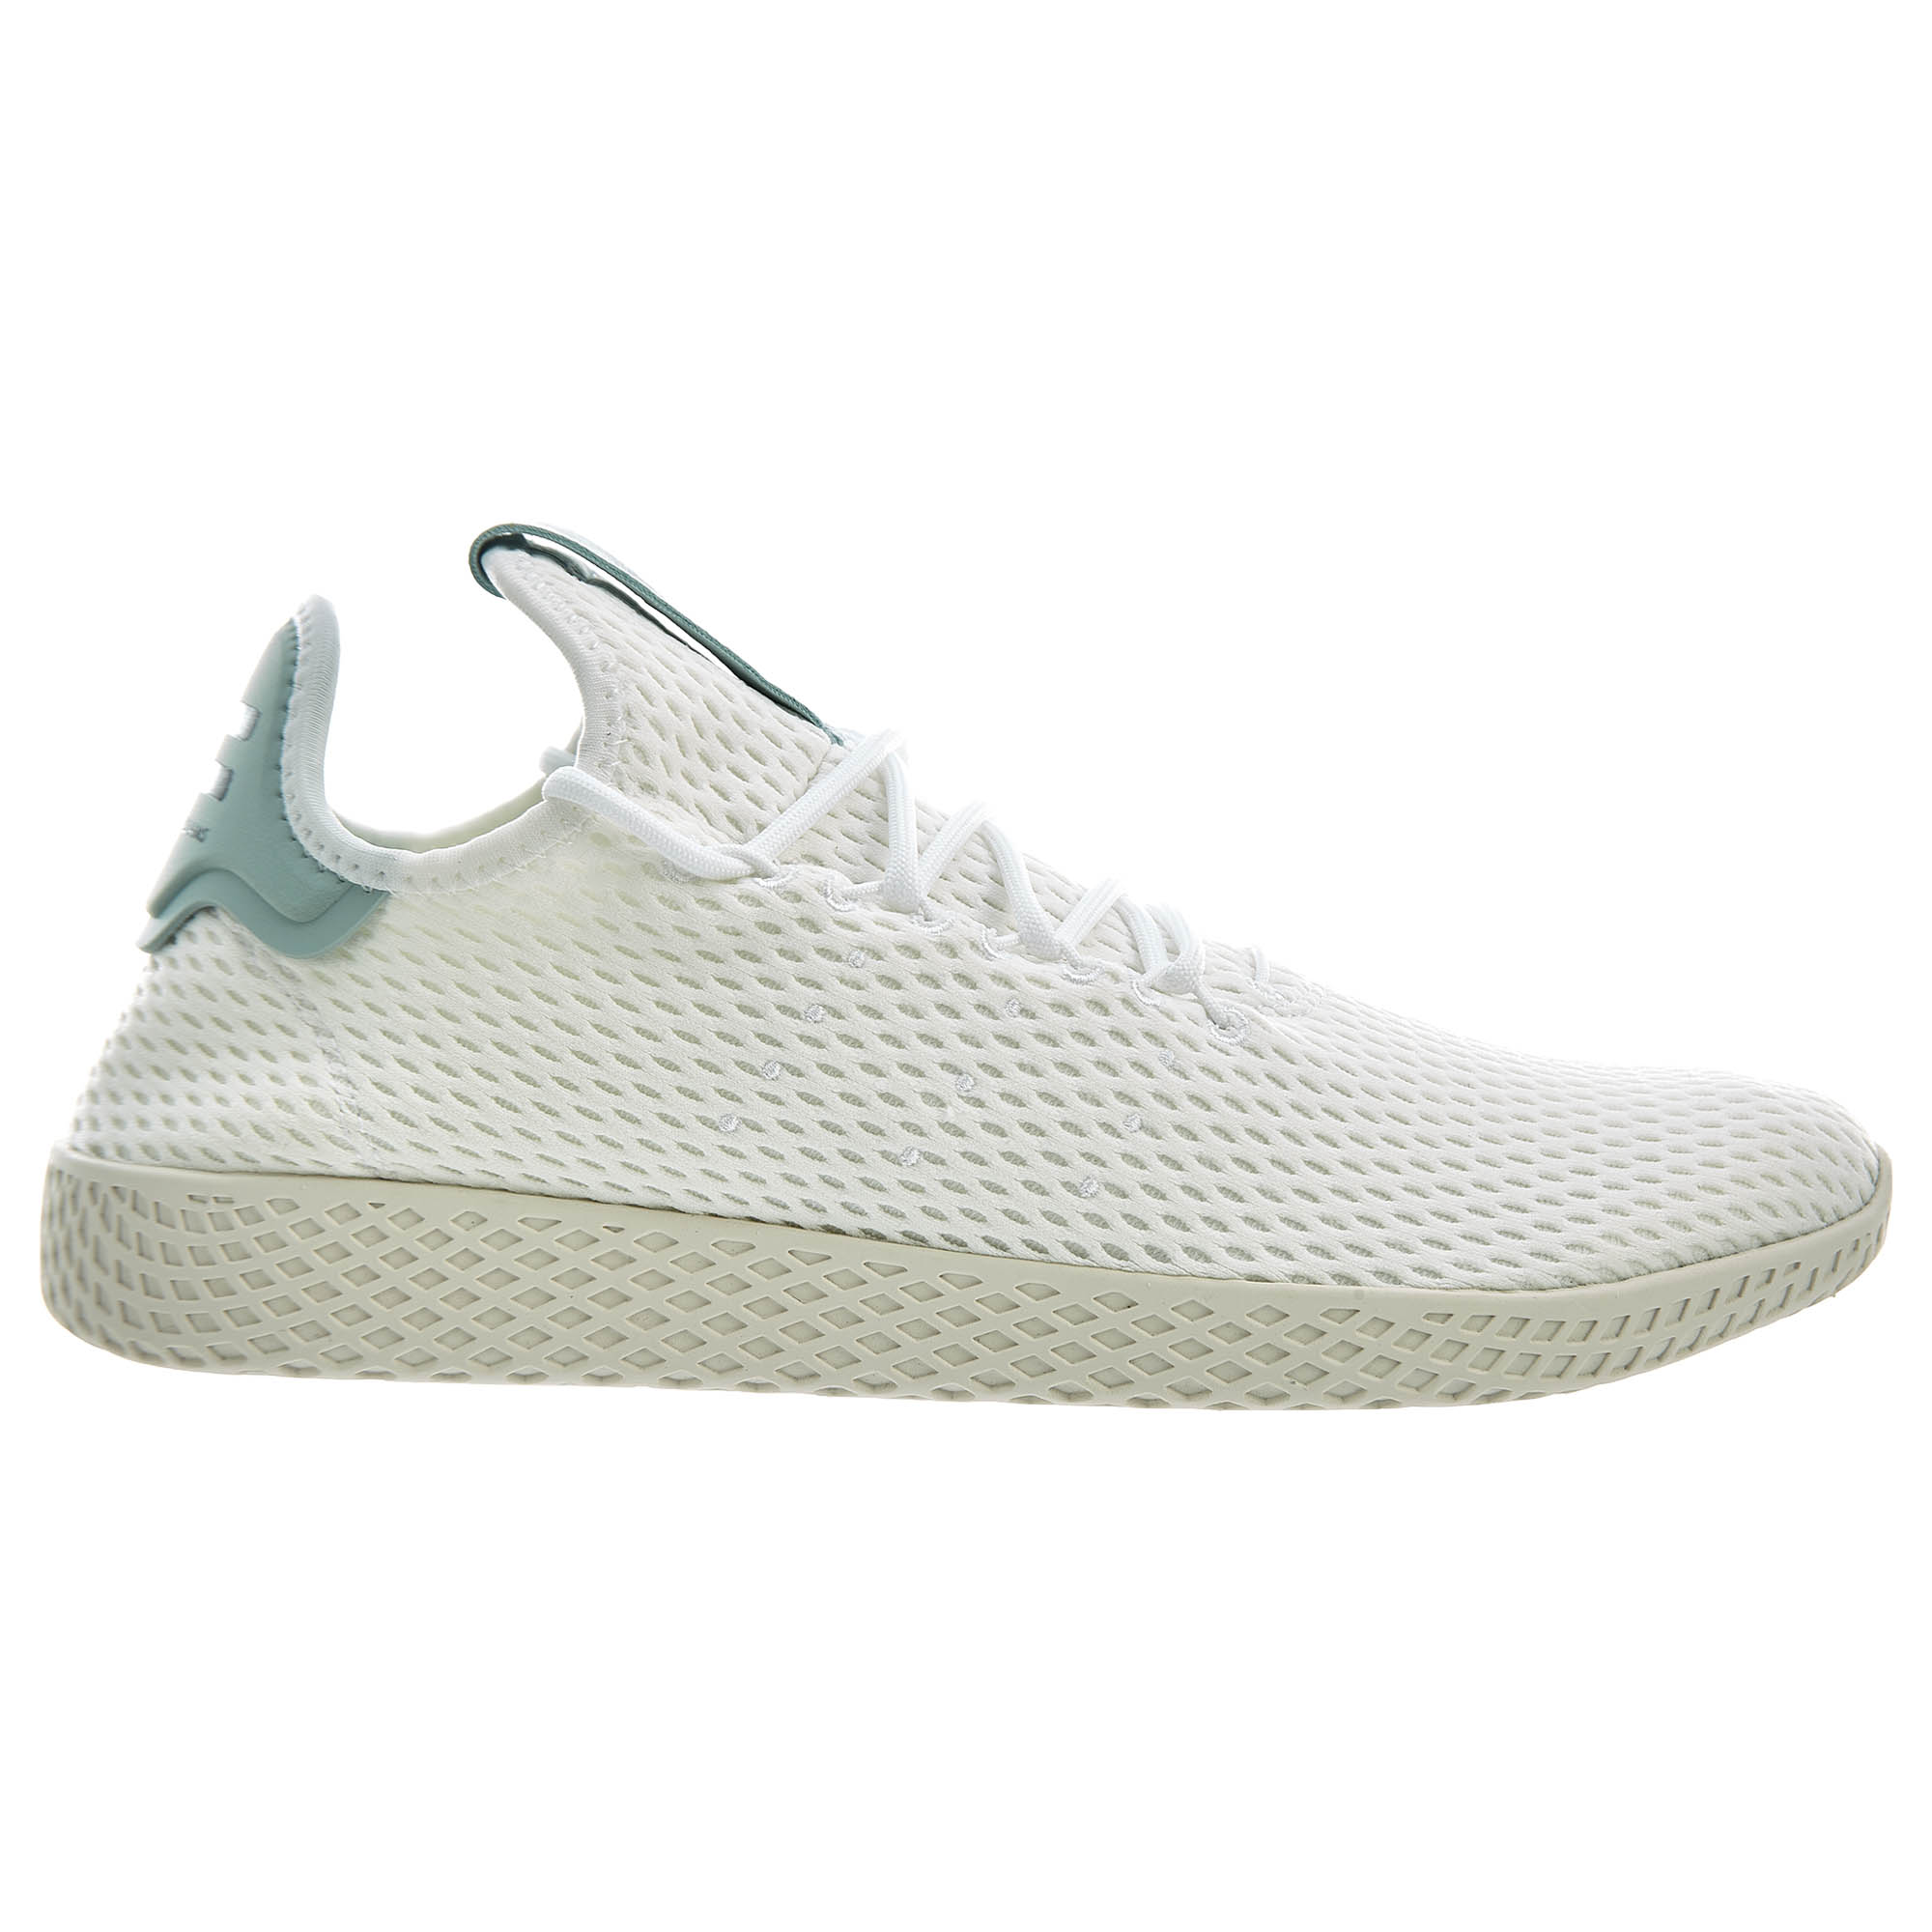 low priced d86d4 68b8e addias Originals Mens Pharrell Williams Tennis Hu Shoes